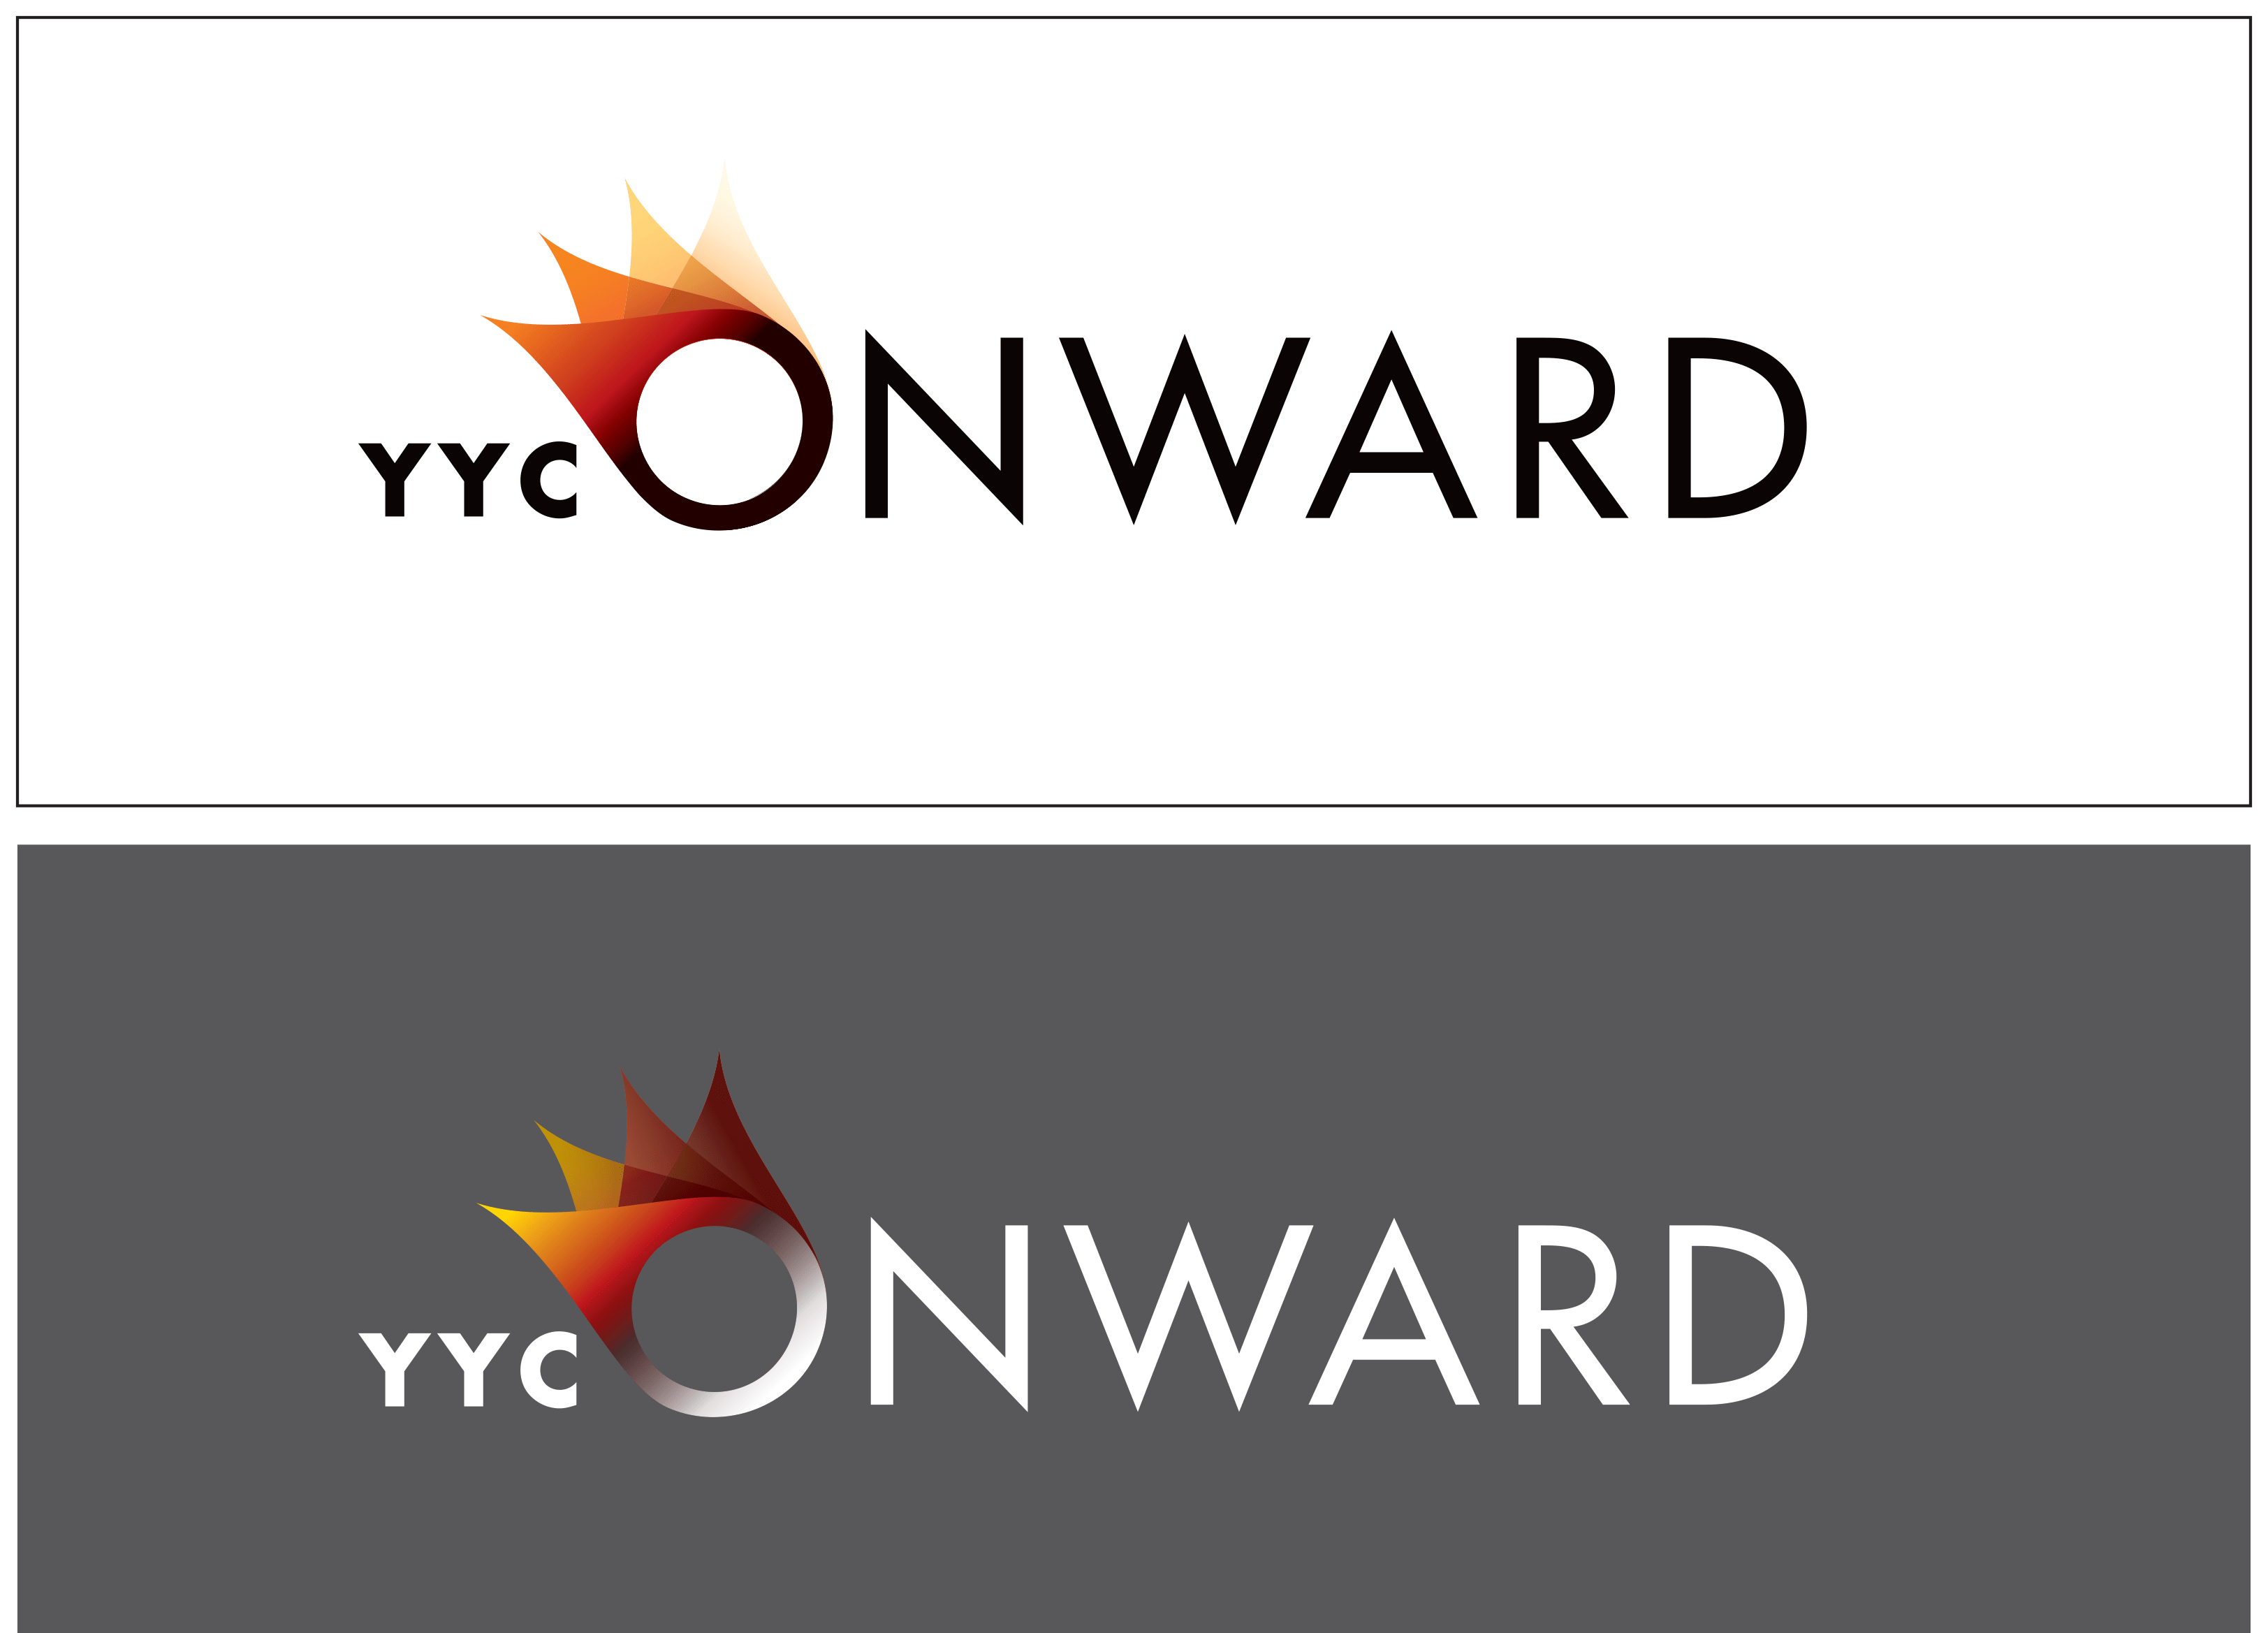 YYC Onward logo